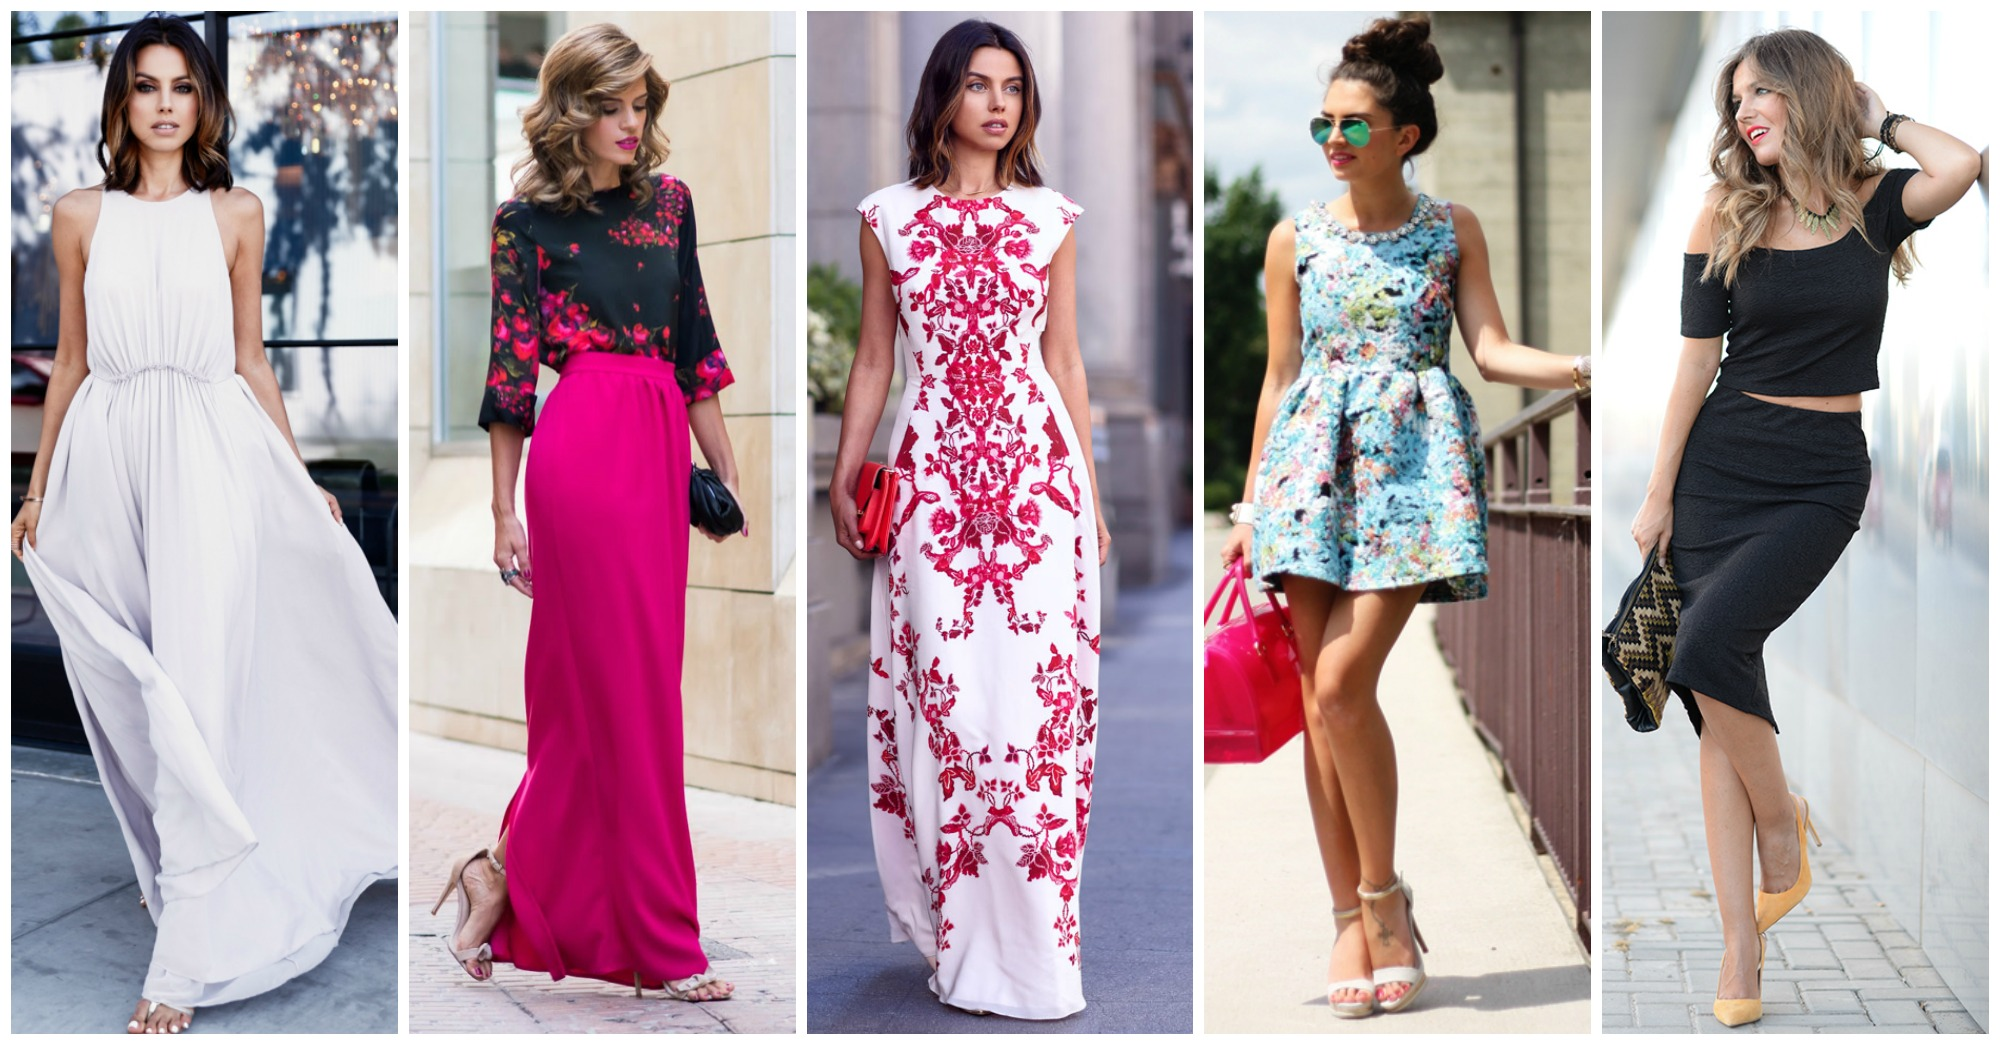 10 Lovely Outfits for Your Next Special Occasion